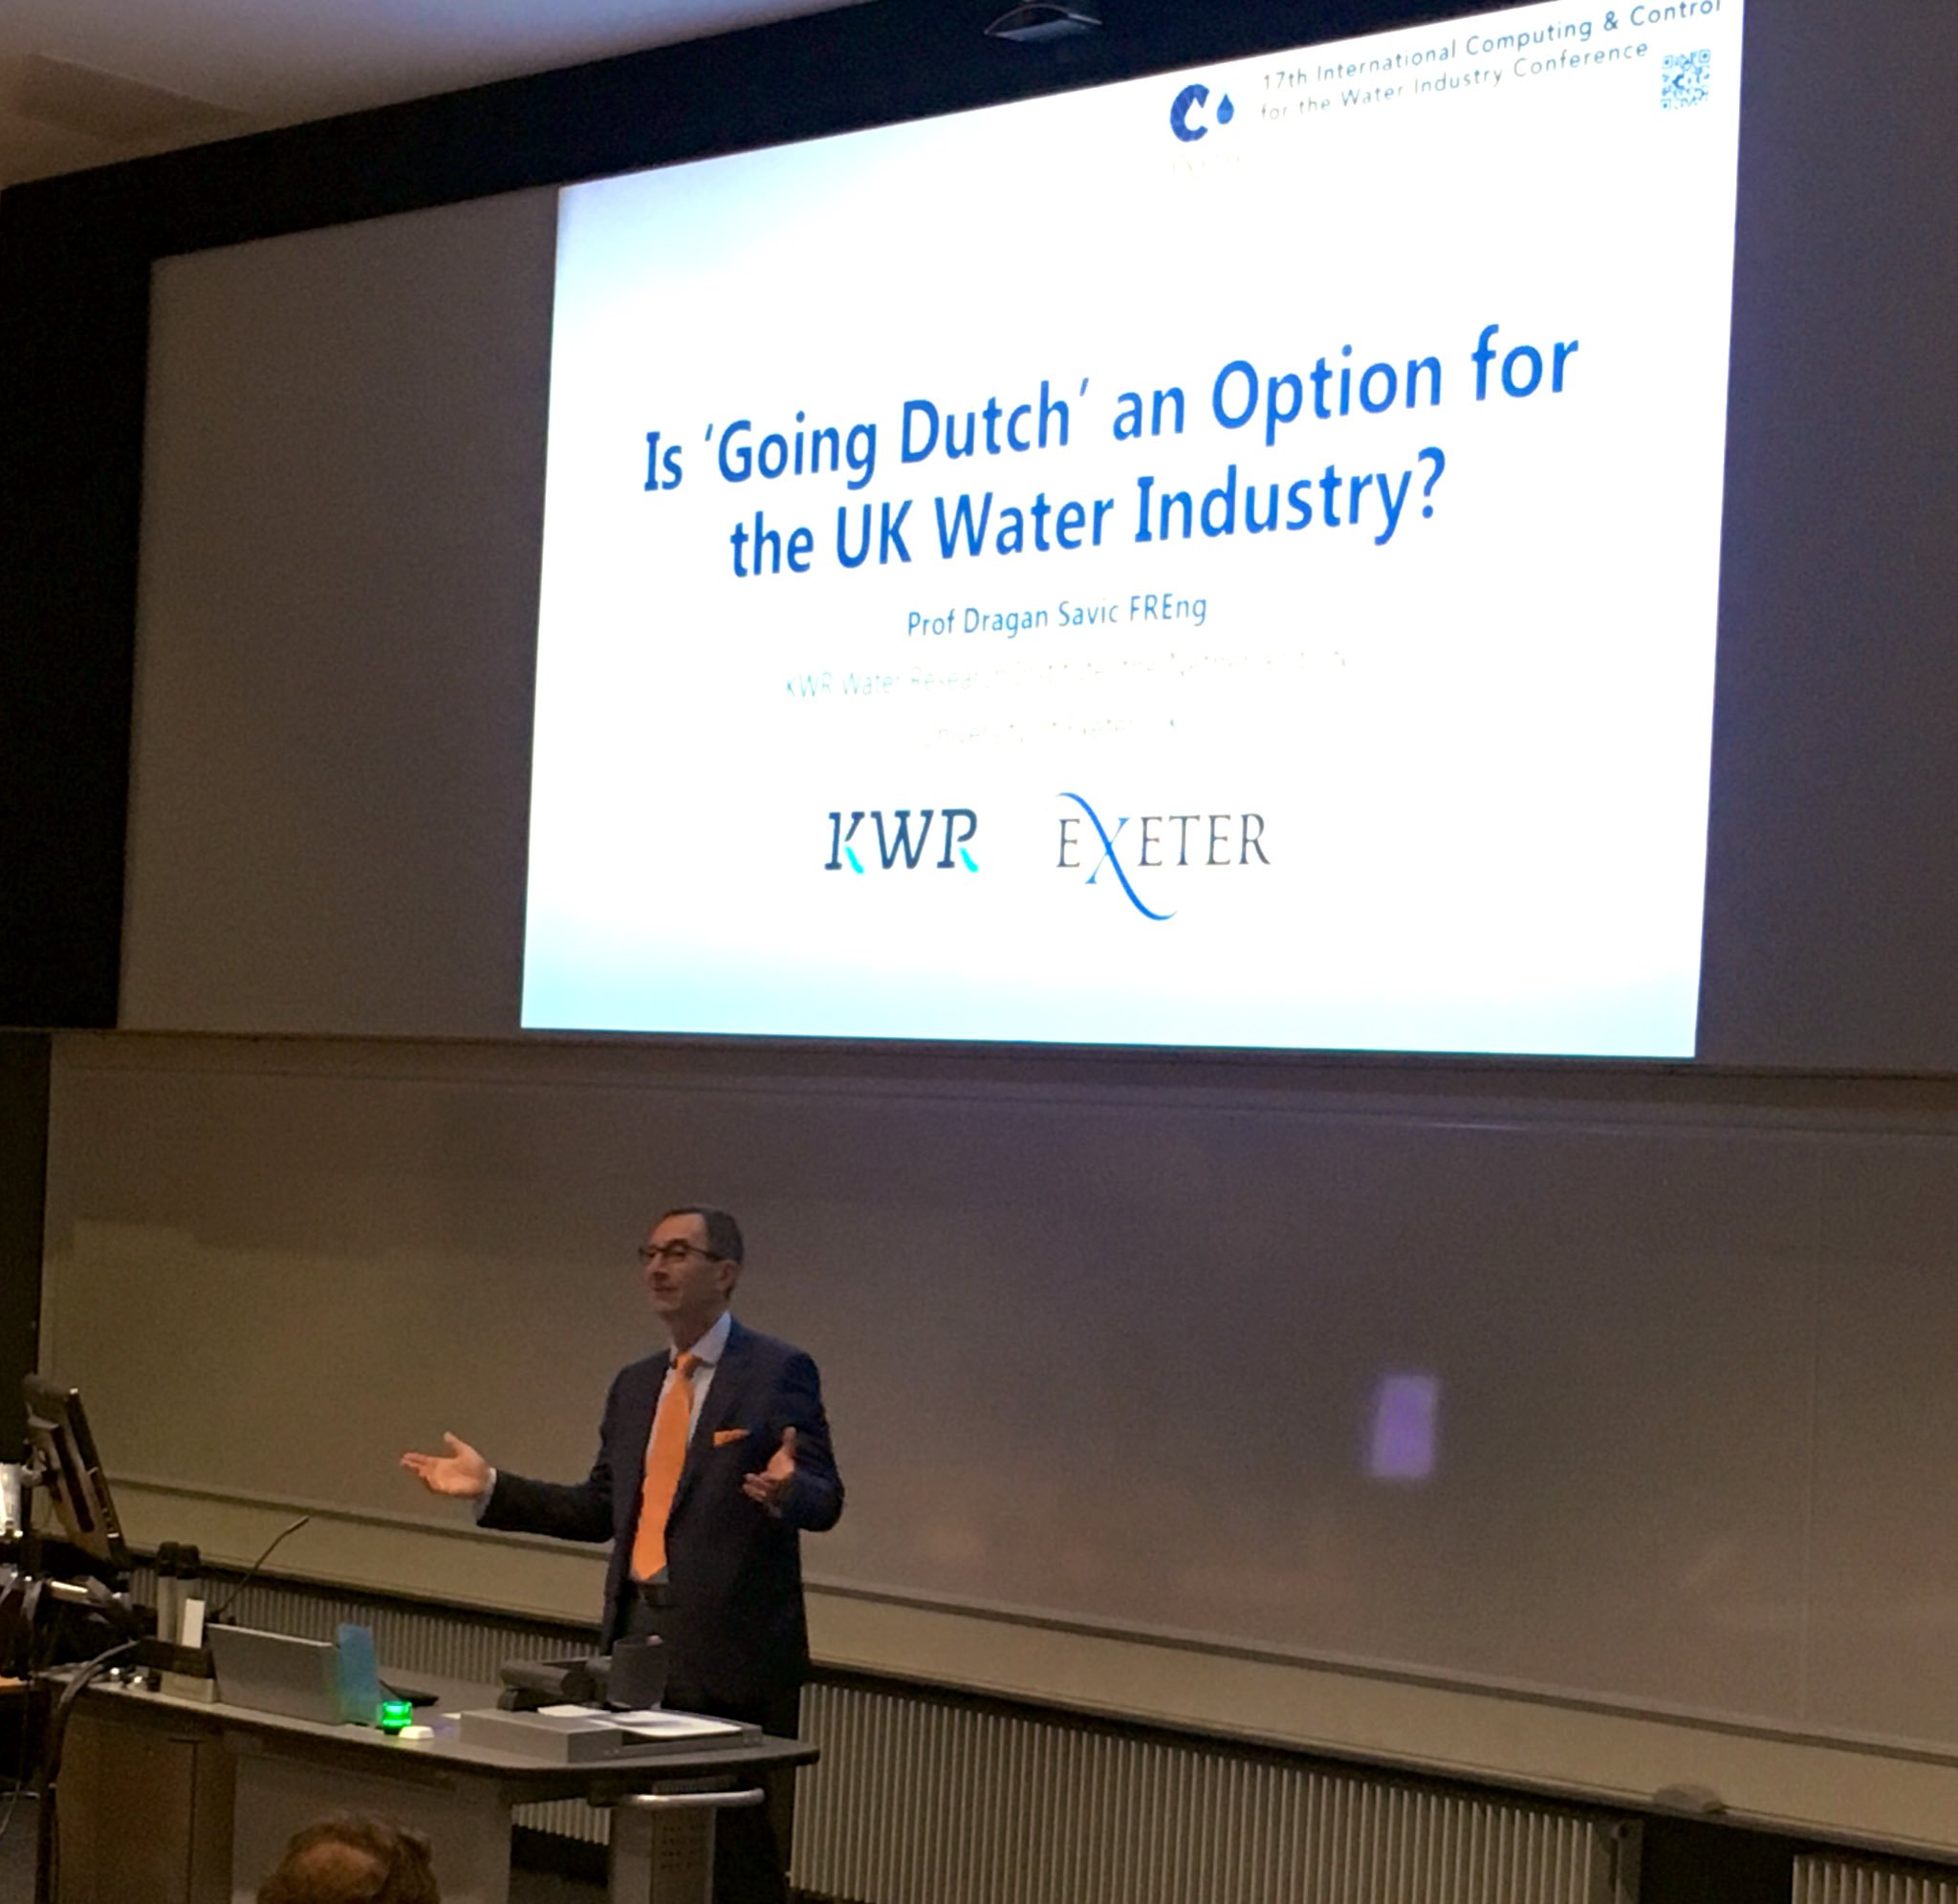 Dragan kicked off the day with a keynote on whether or not 'Going Dutch' is a wise decision regarding drinking water supply and water management.